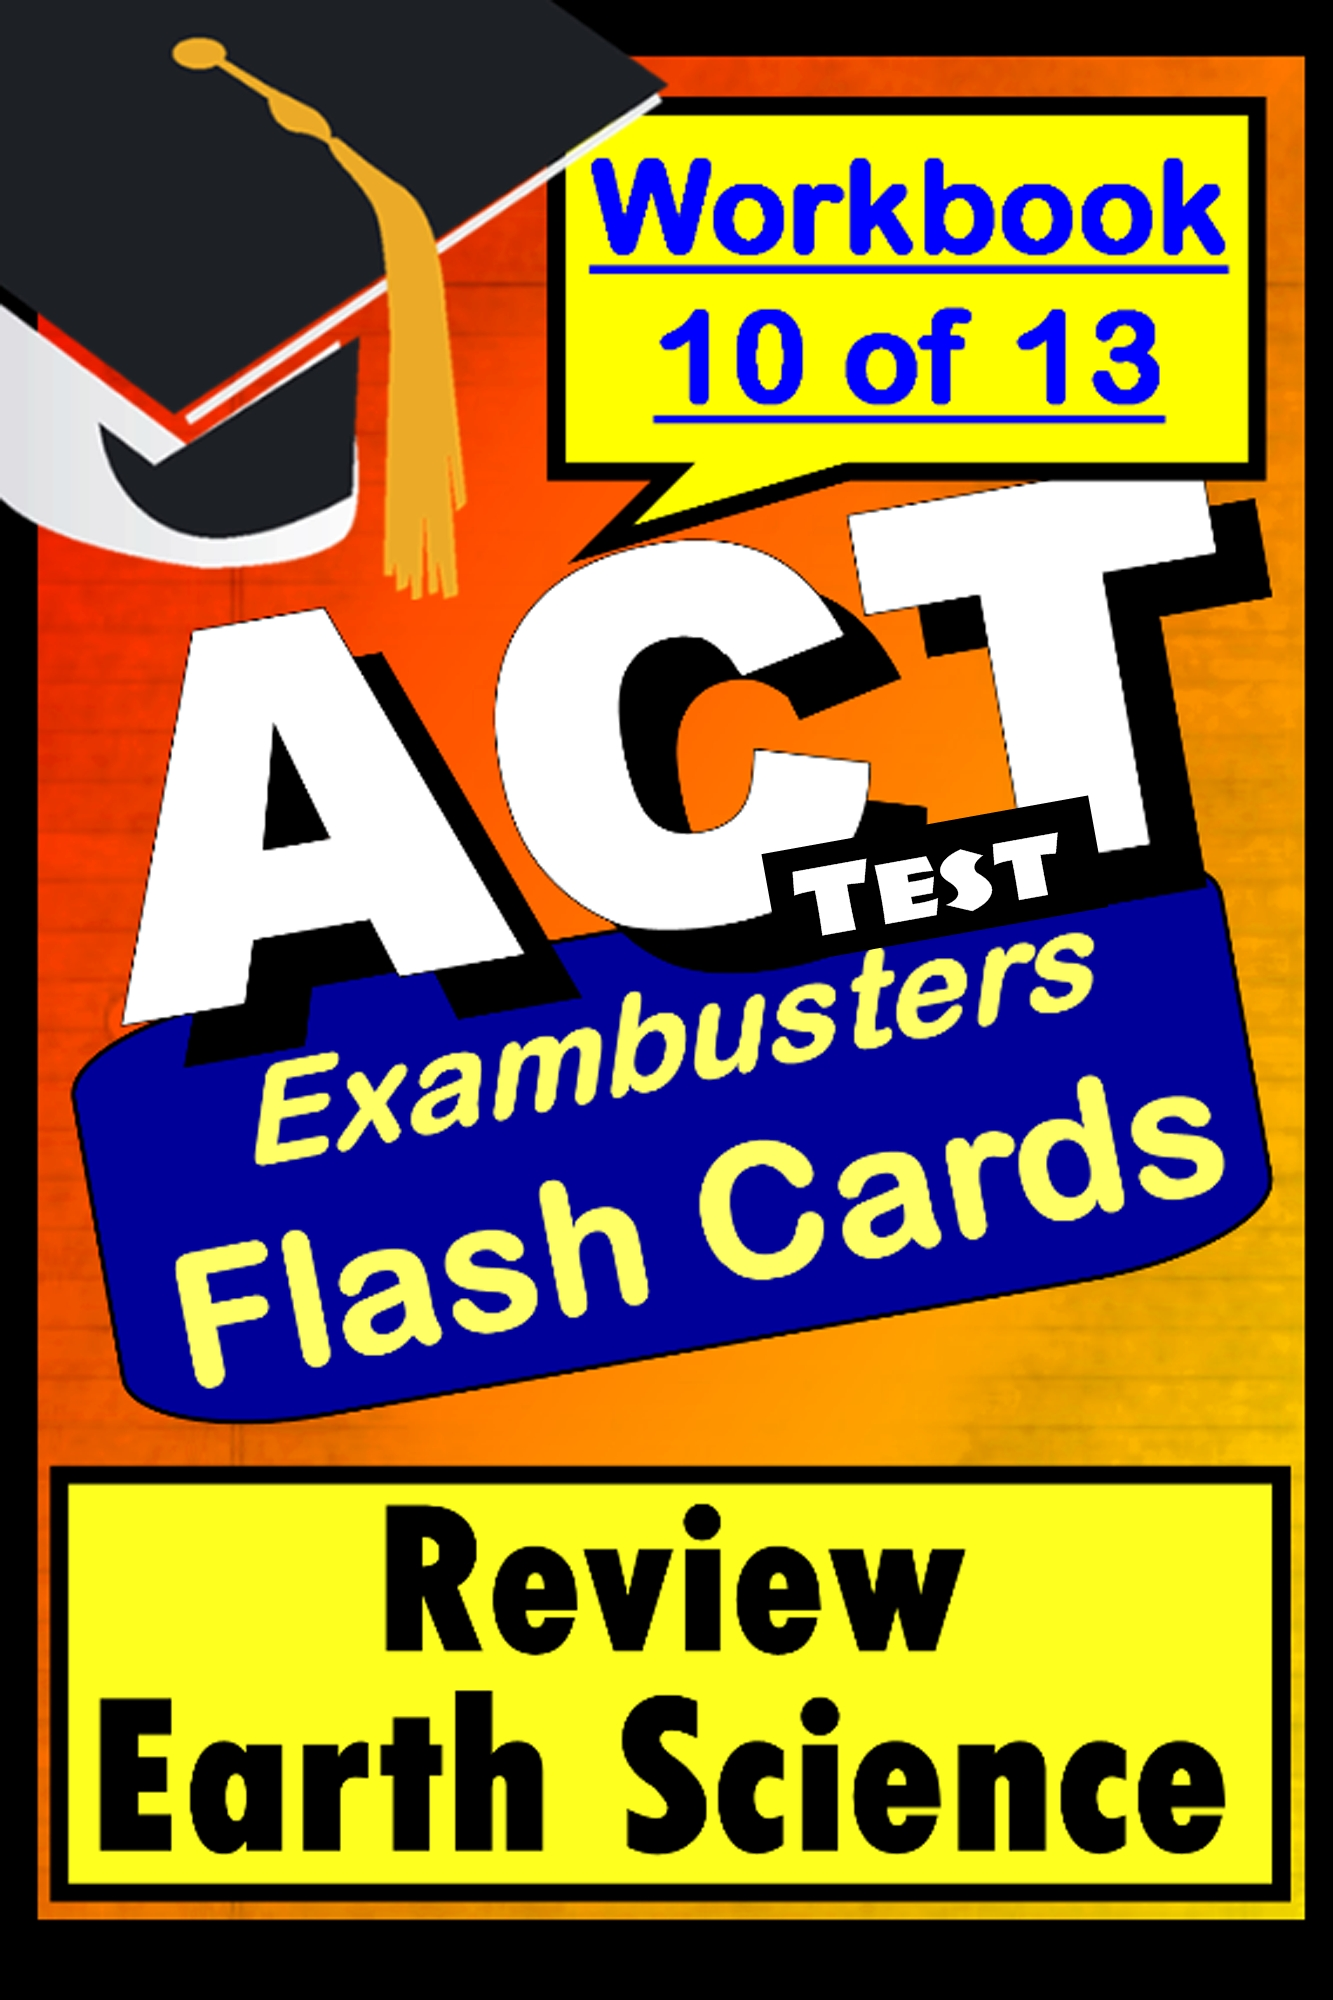 ACT Test Earth Science--Exambusters Flashcards--Workbook 10 of 13